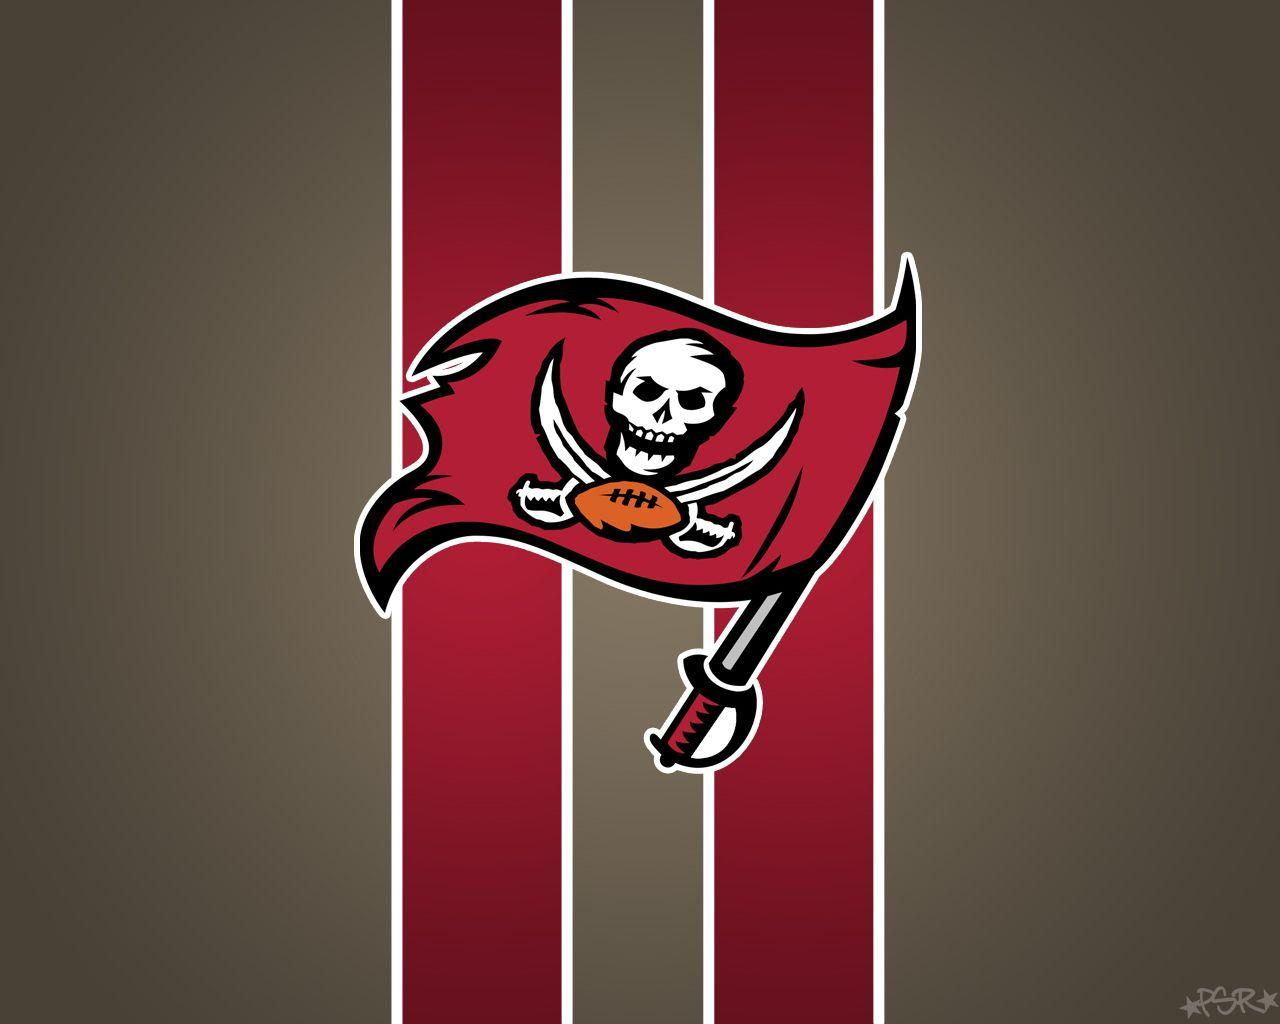 7 Tampa Bay Buccaneers HD Wallpapers | Backgrounds - Wallpaper Abyss